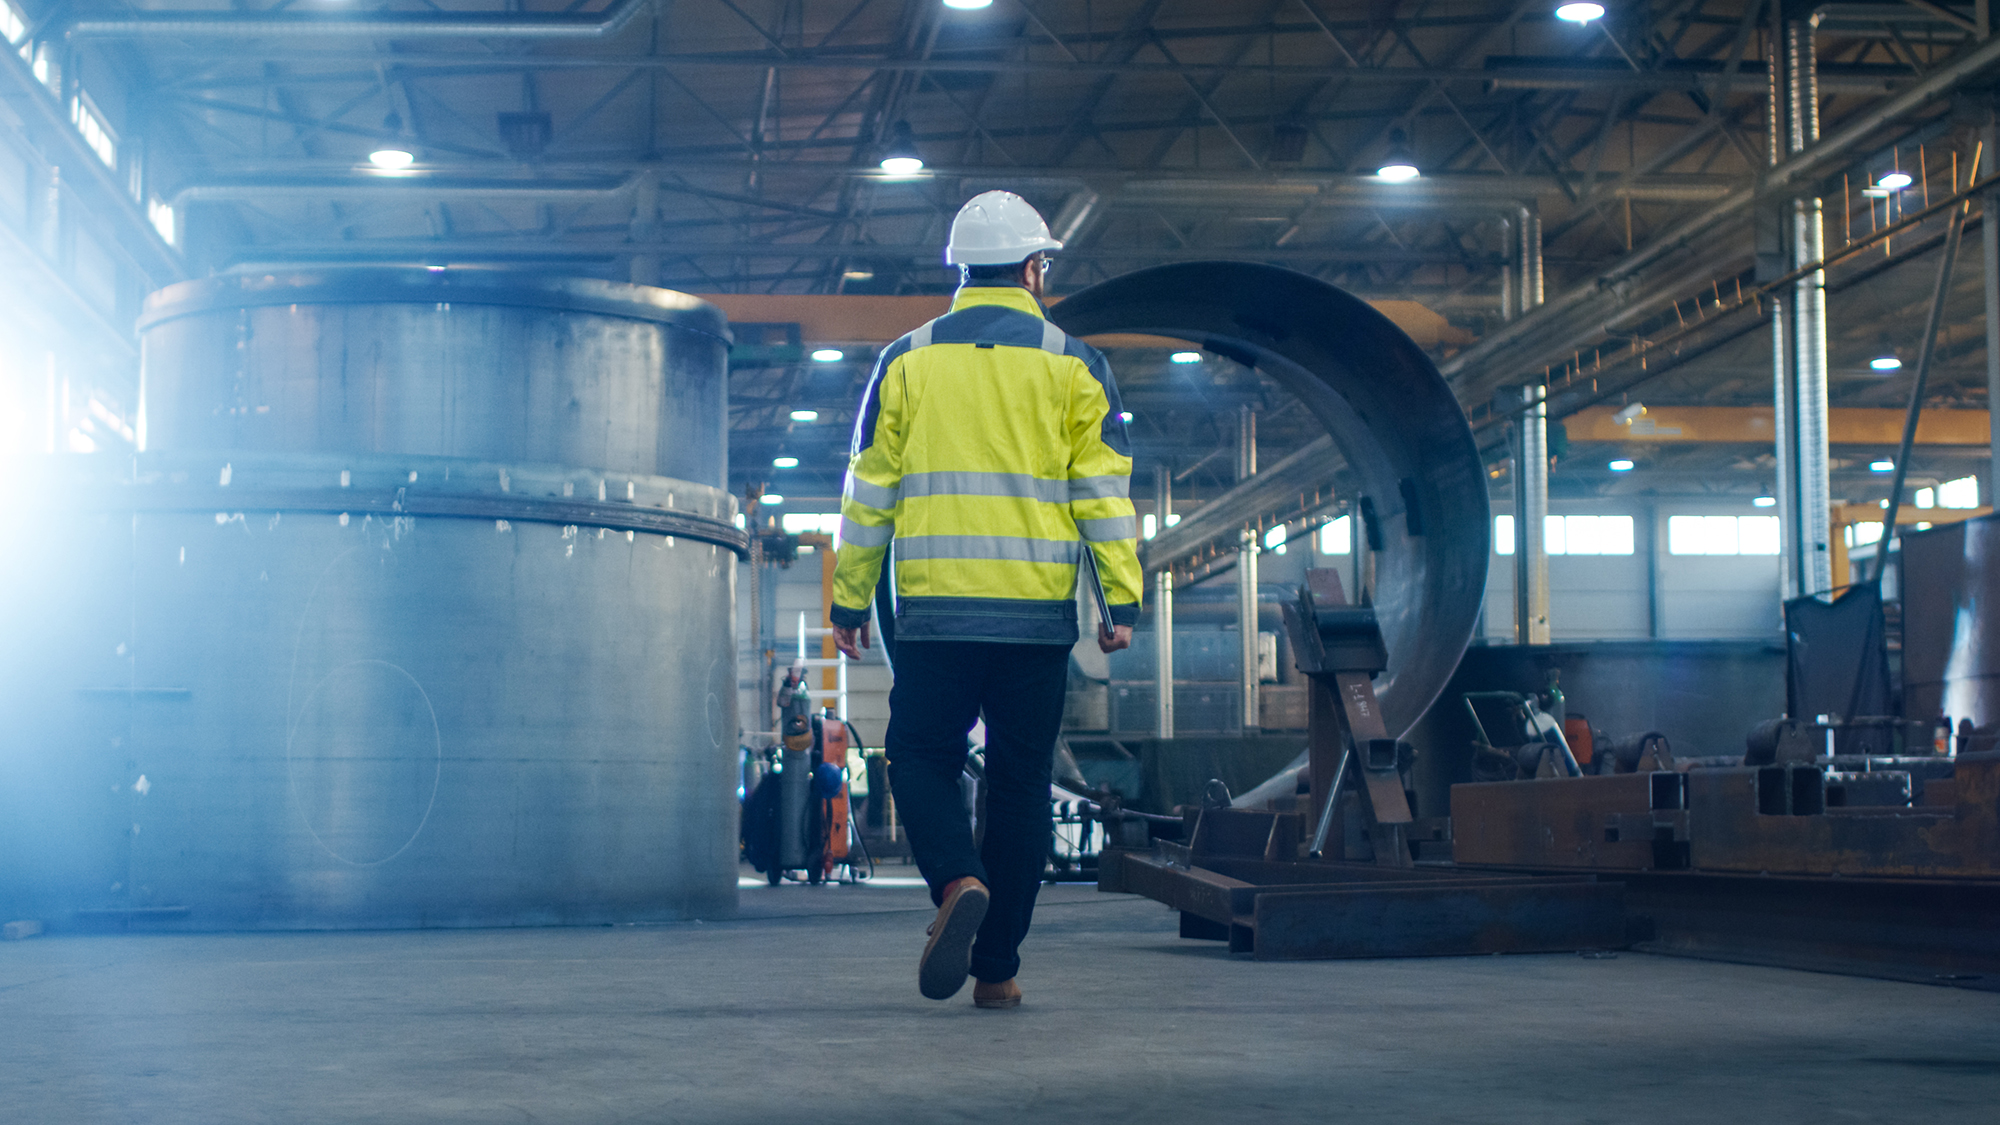 Industrial Engineer in Hard Hat Wearing Safety Jacket Walks Through Heavy Industry Manufacturing Factory with Various Metalwo